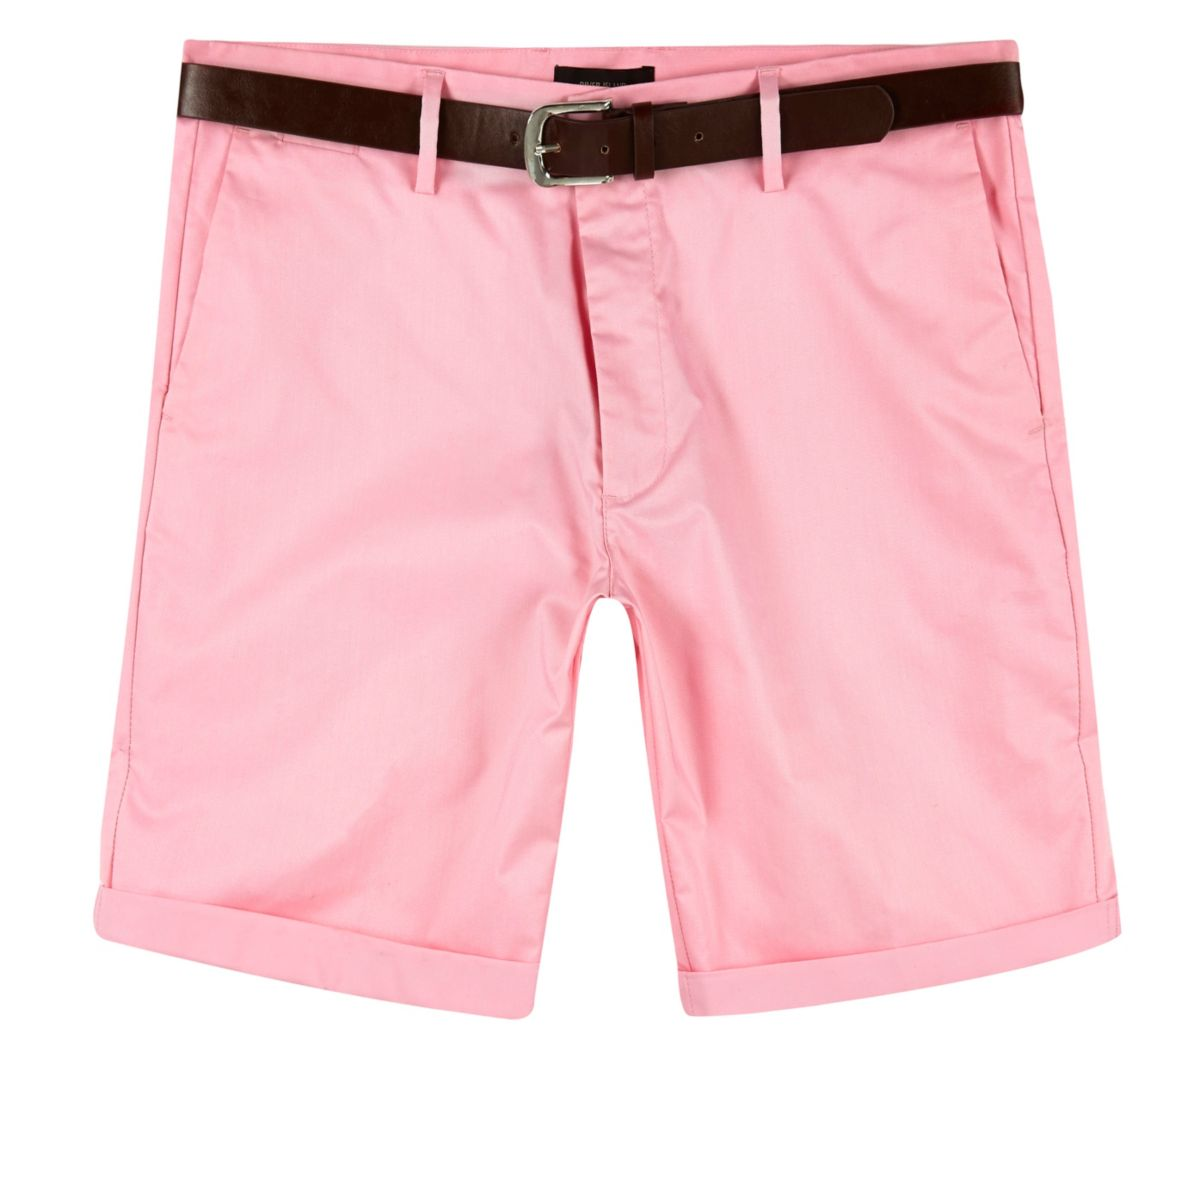 Pink belted Oxford shorts